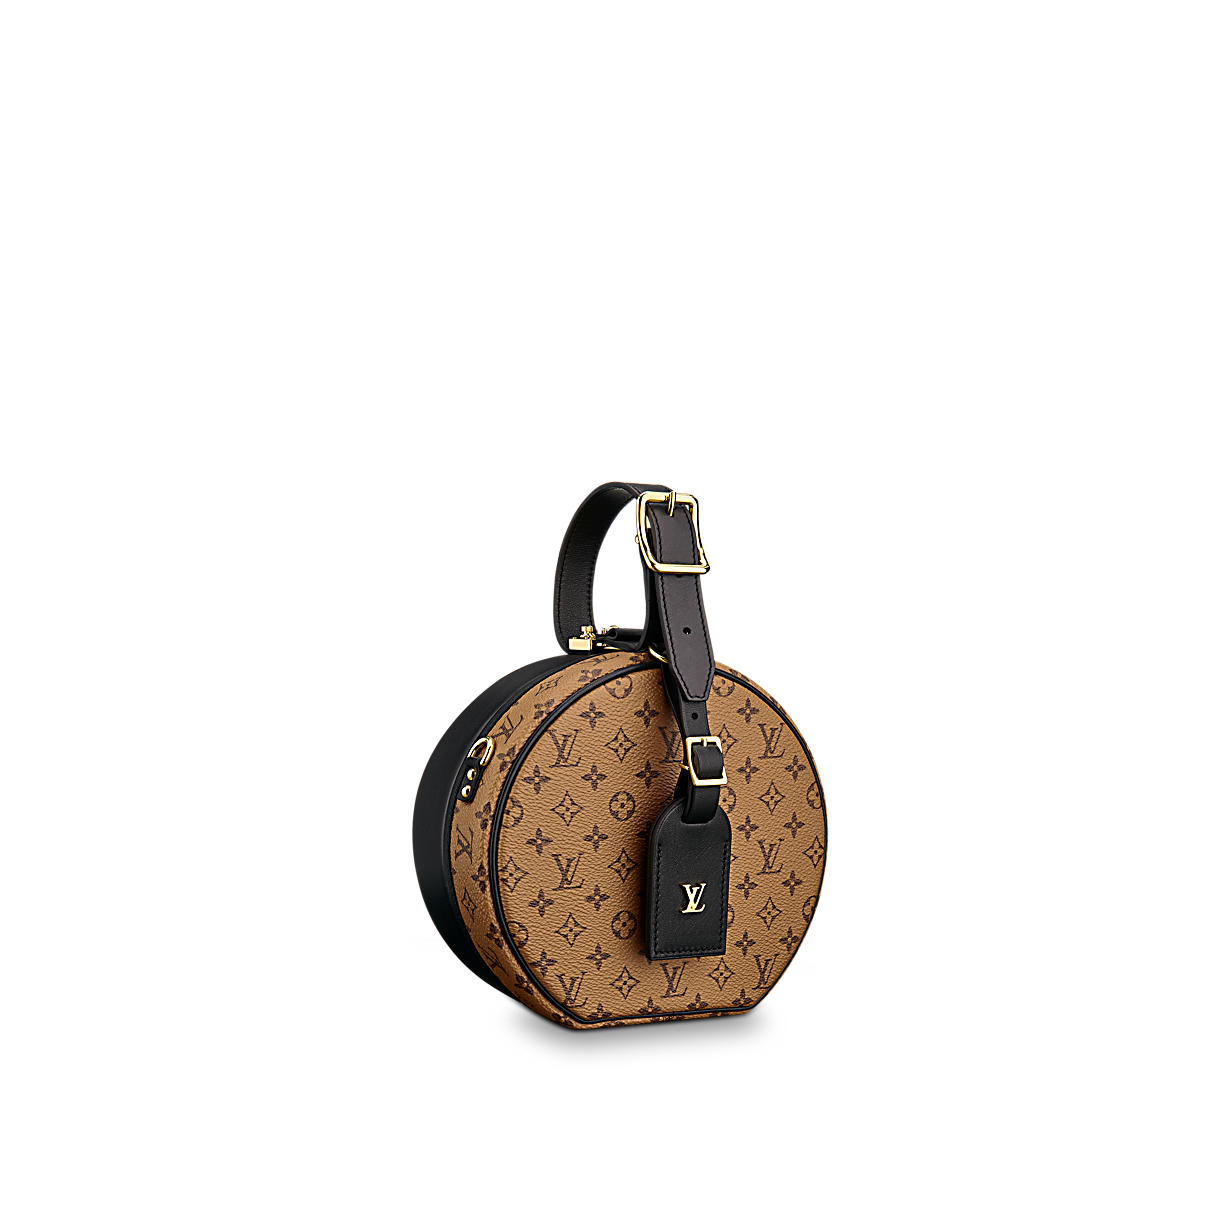 Louis Vuitton Hat Box Bag